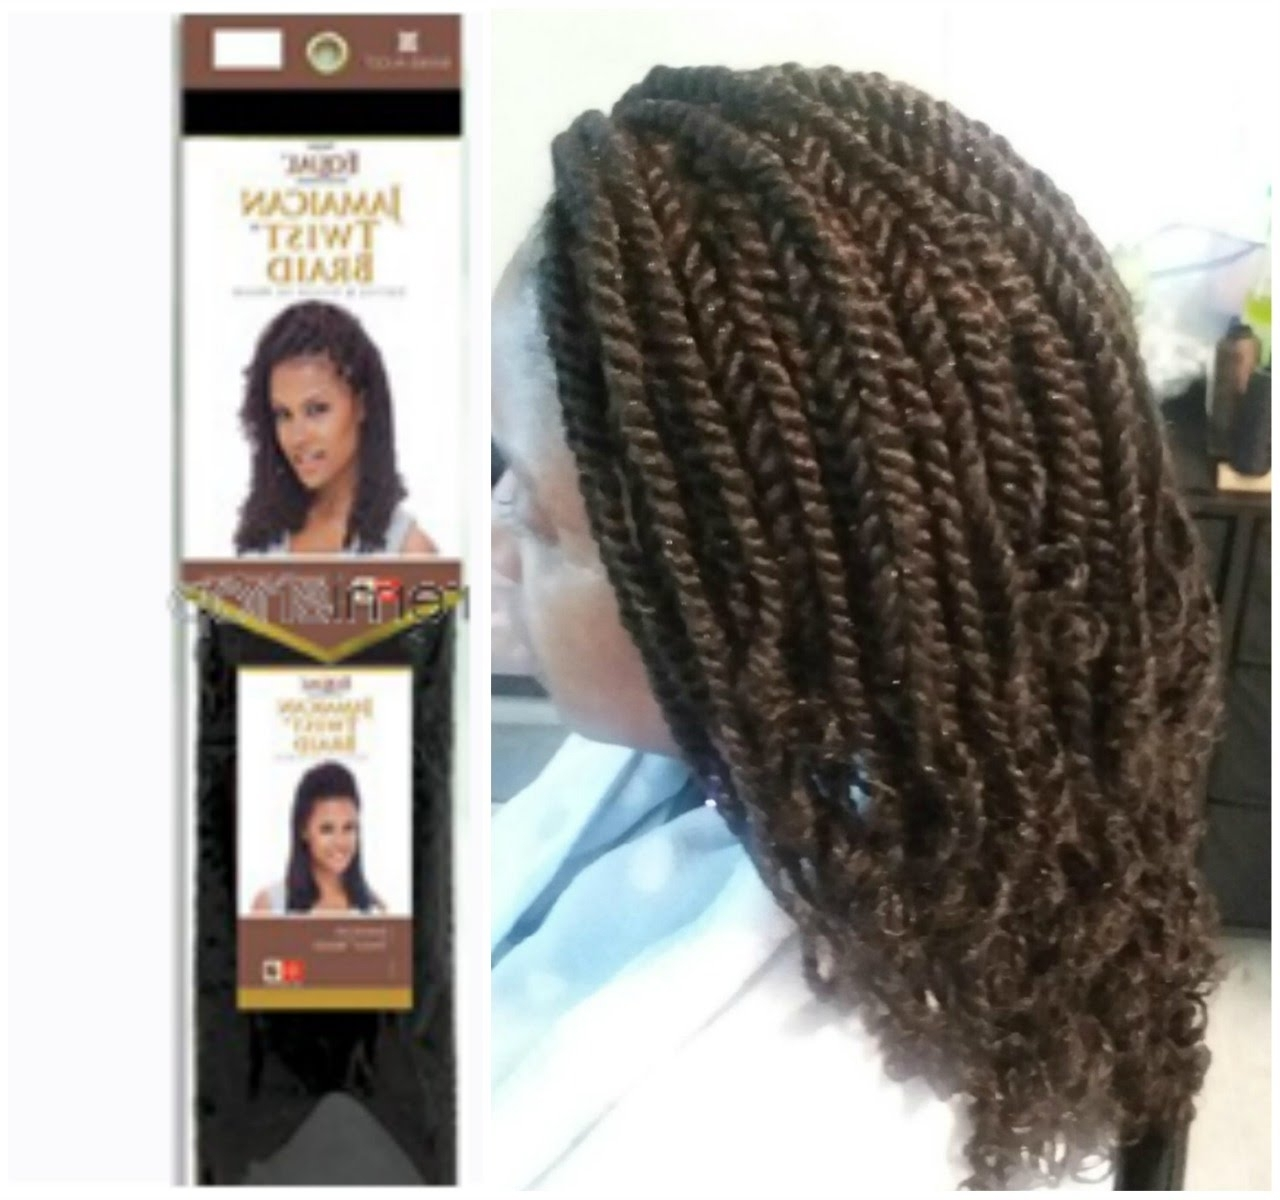 Well Known Jamaican Braided Hairstyles Intended For Freetress Equal Jamaican Twist Braid – Youtube (View 15 of 15)